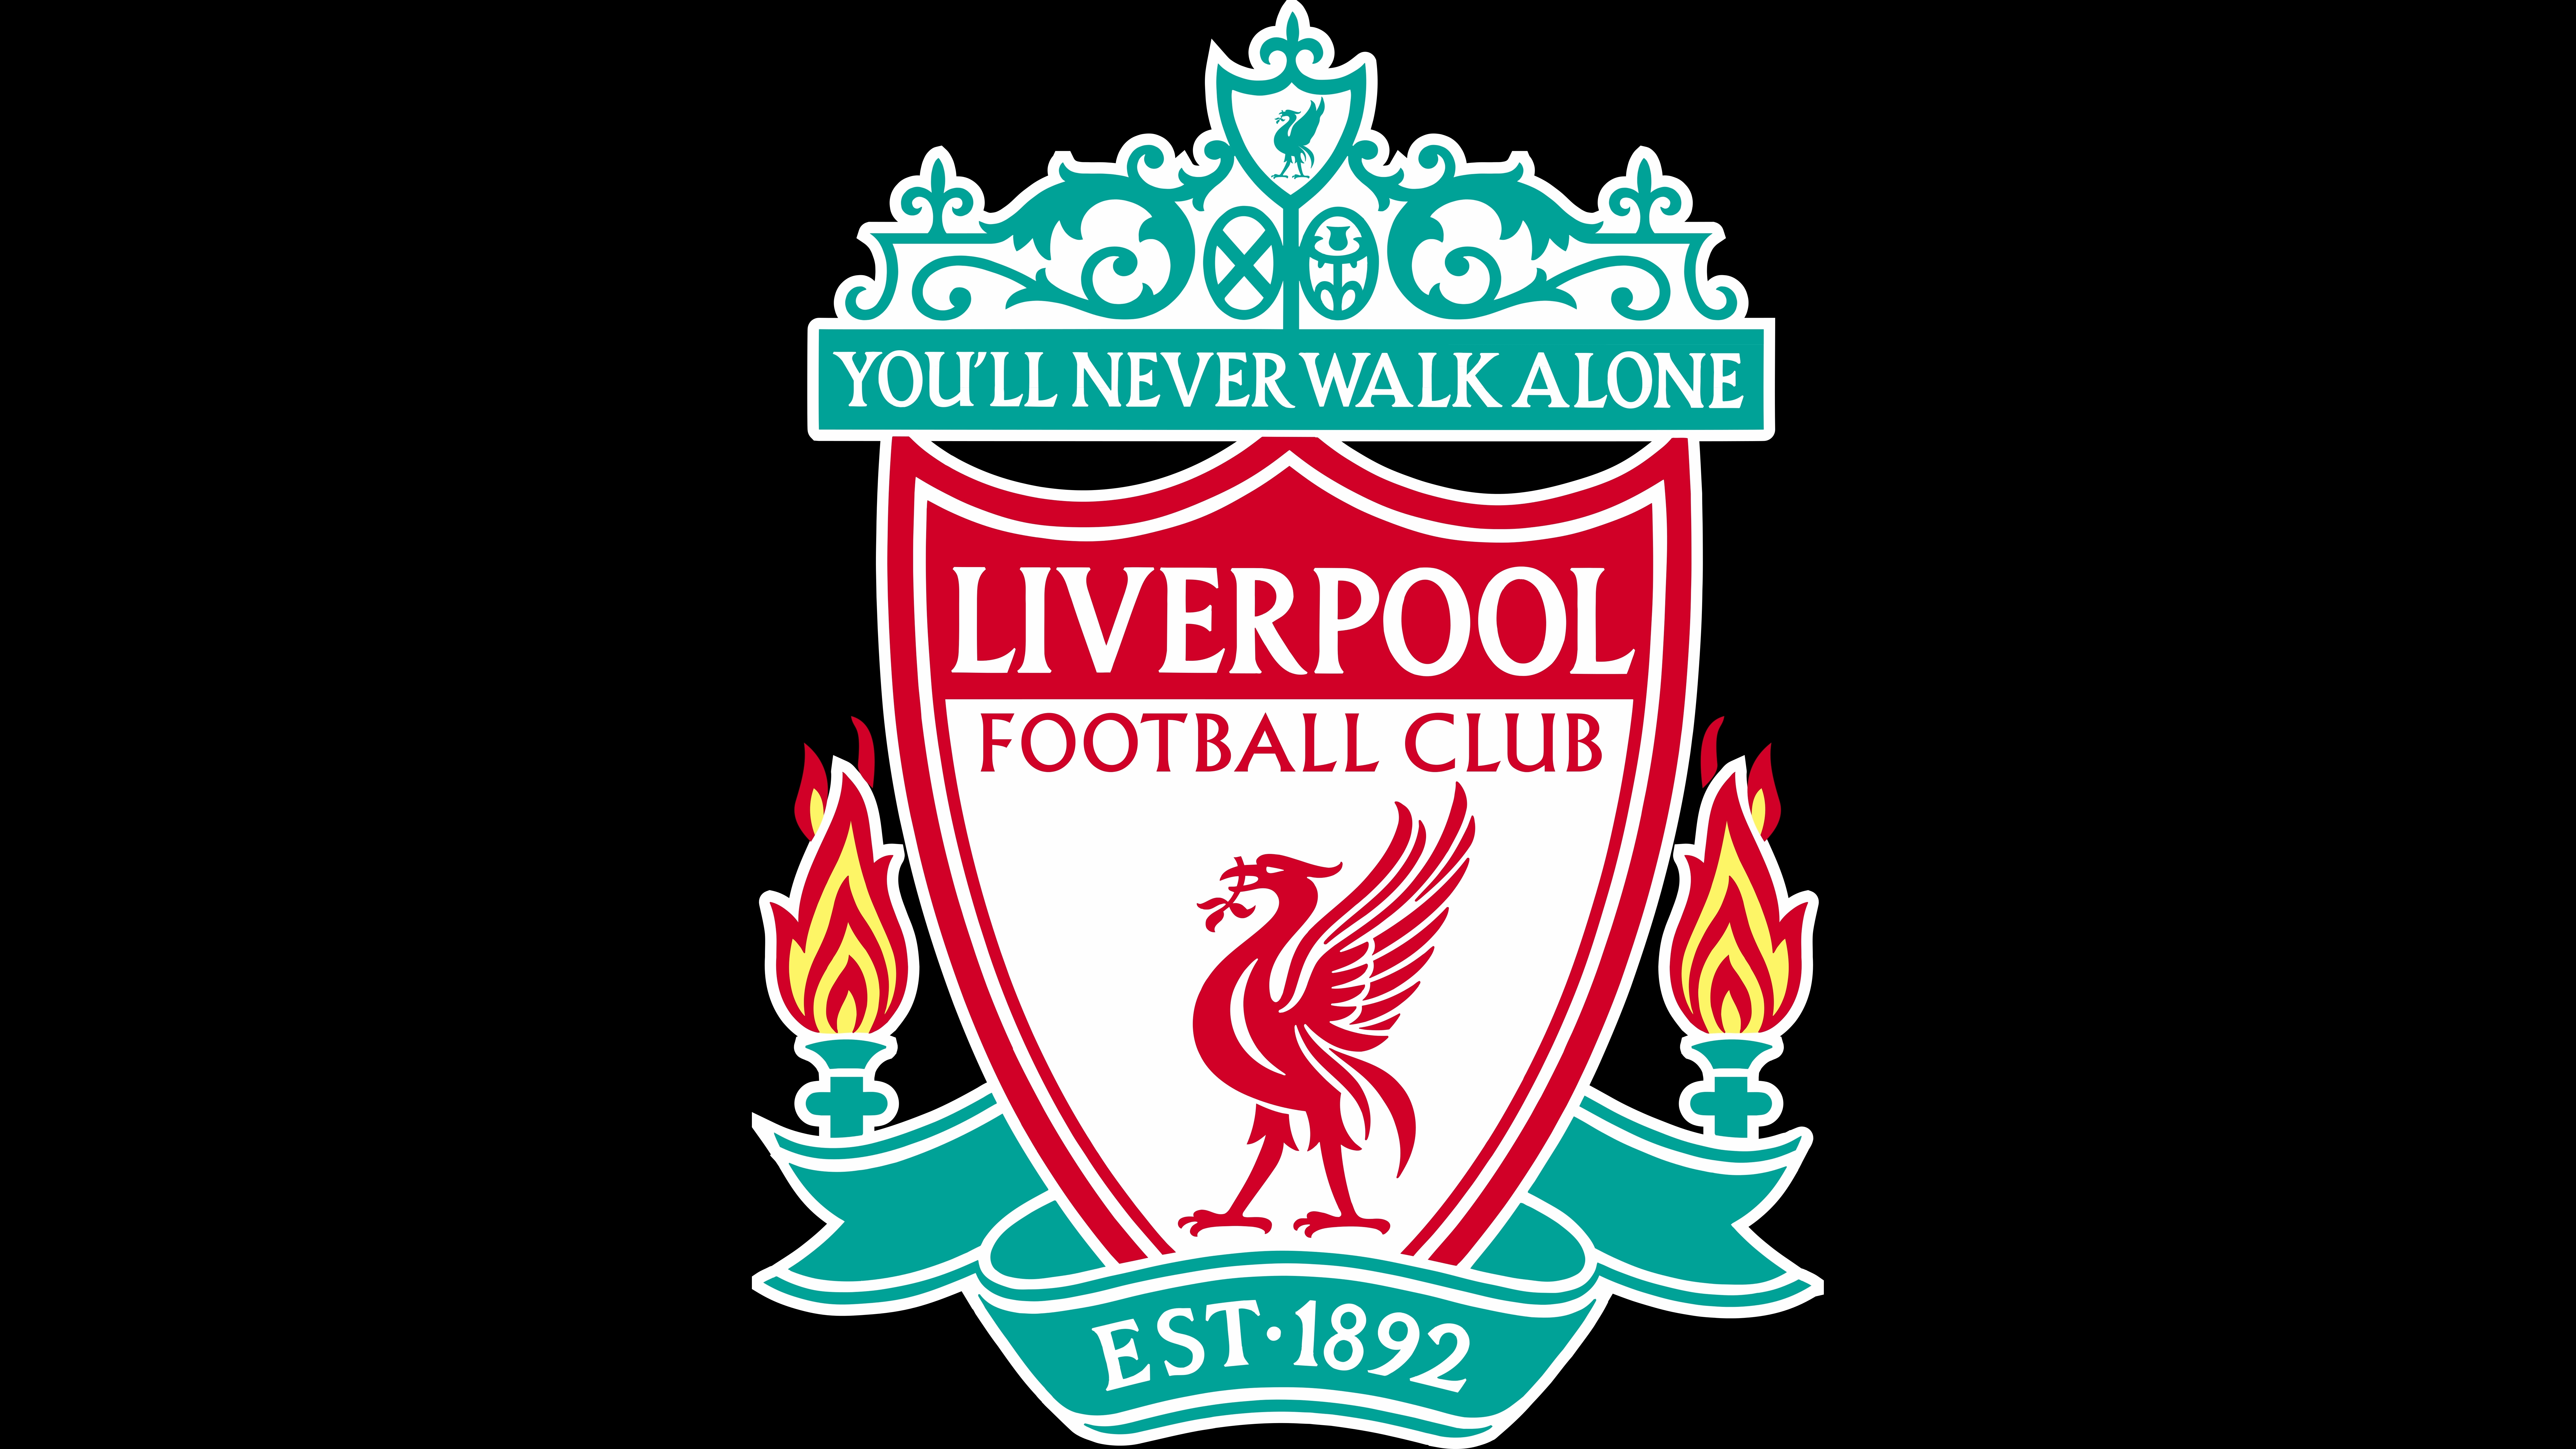 liverpool fc The latest liverpool news from yahoo sports find liverpool fixtures, results, top scorers, transfer rumours and player profiles, with exclusive photos and video.